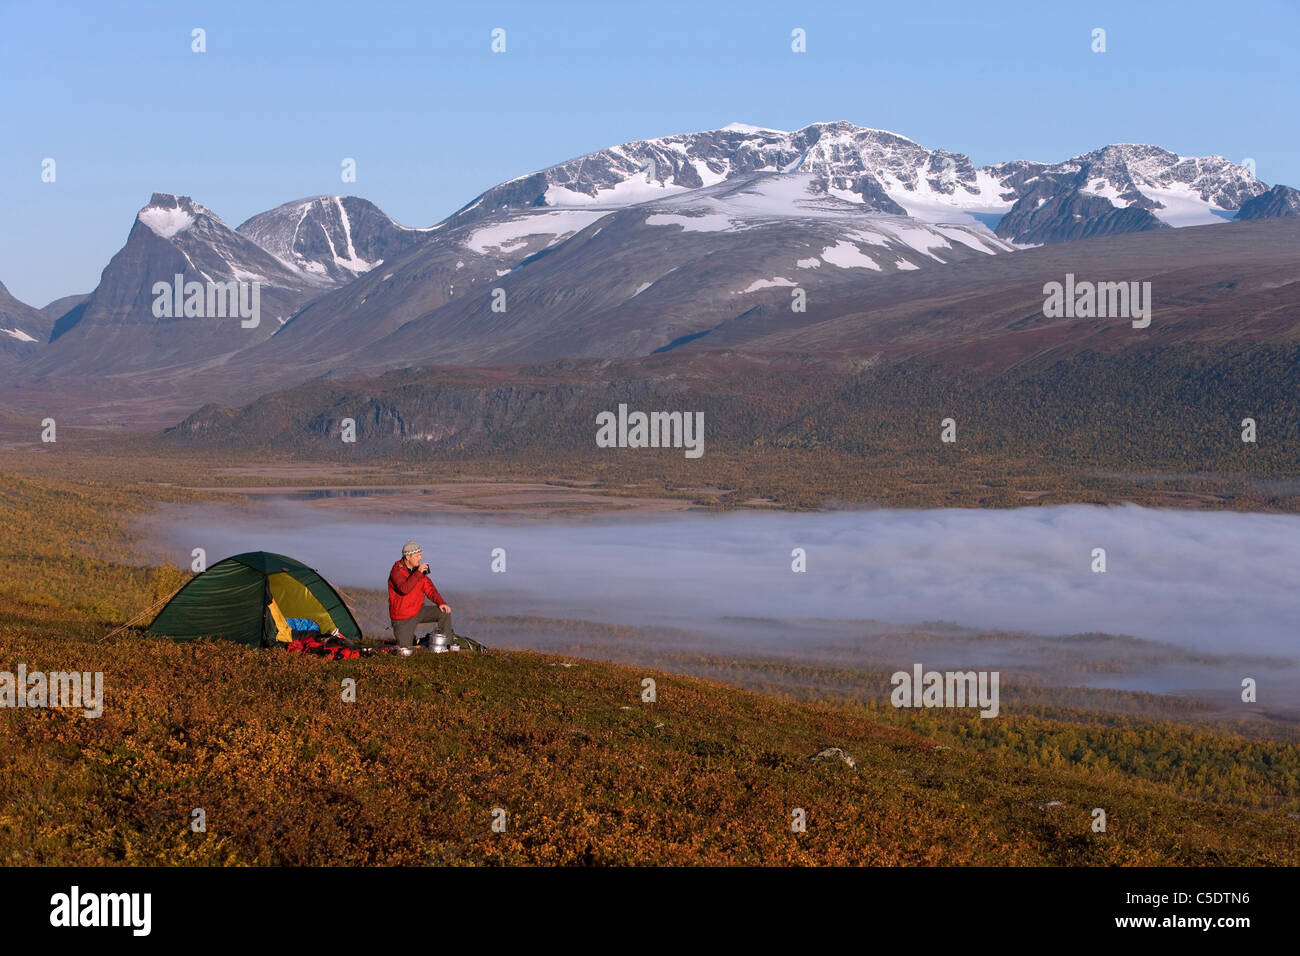 Hiker by tent and fog on landscape with Kebnekaise in the background at Lapland, Sweden - Stock Image